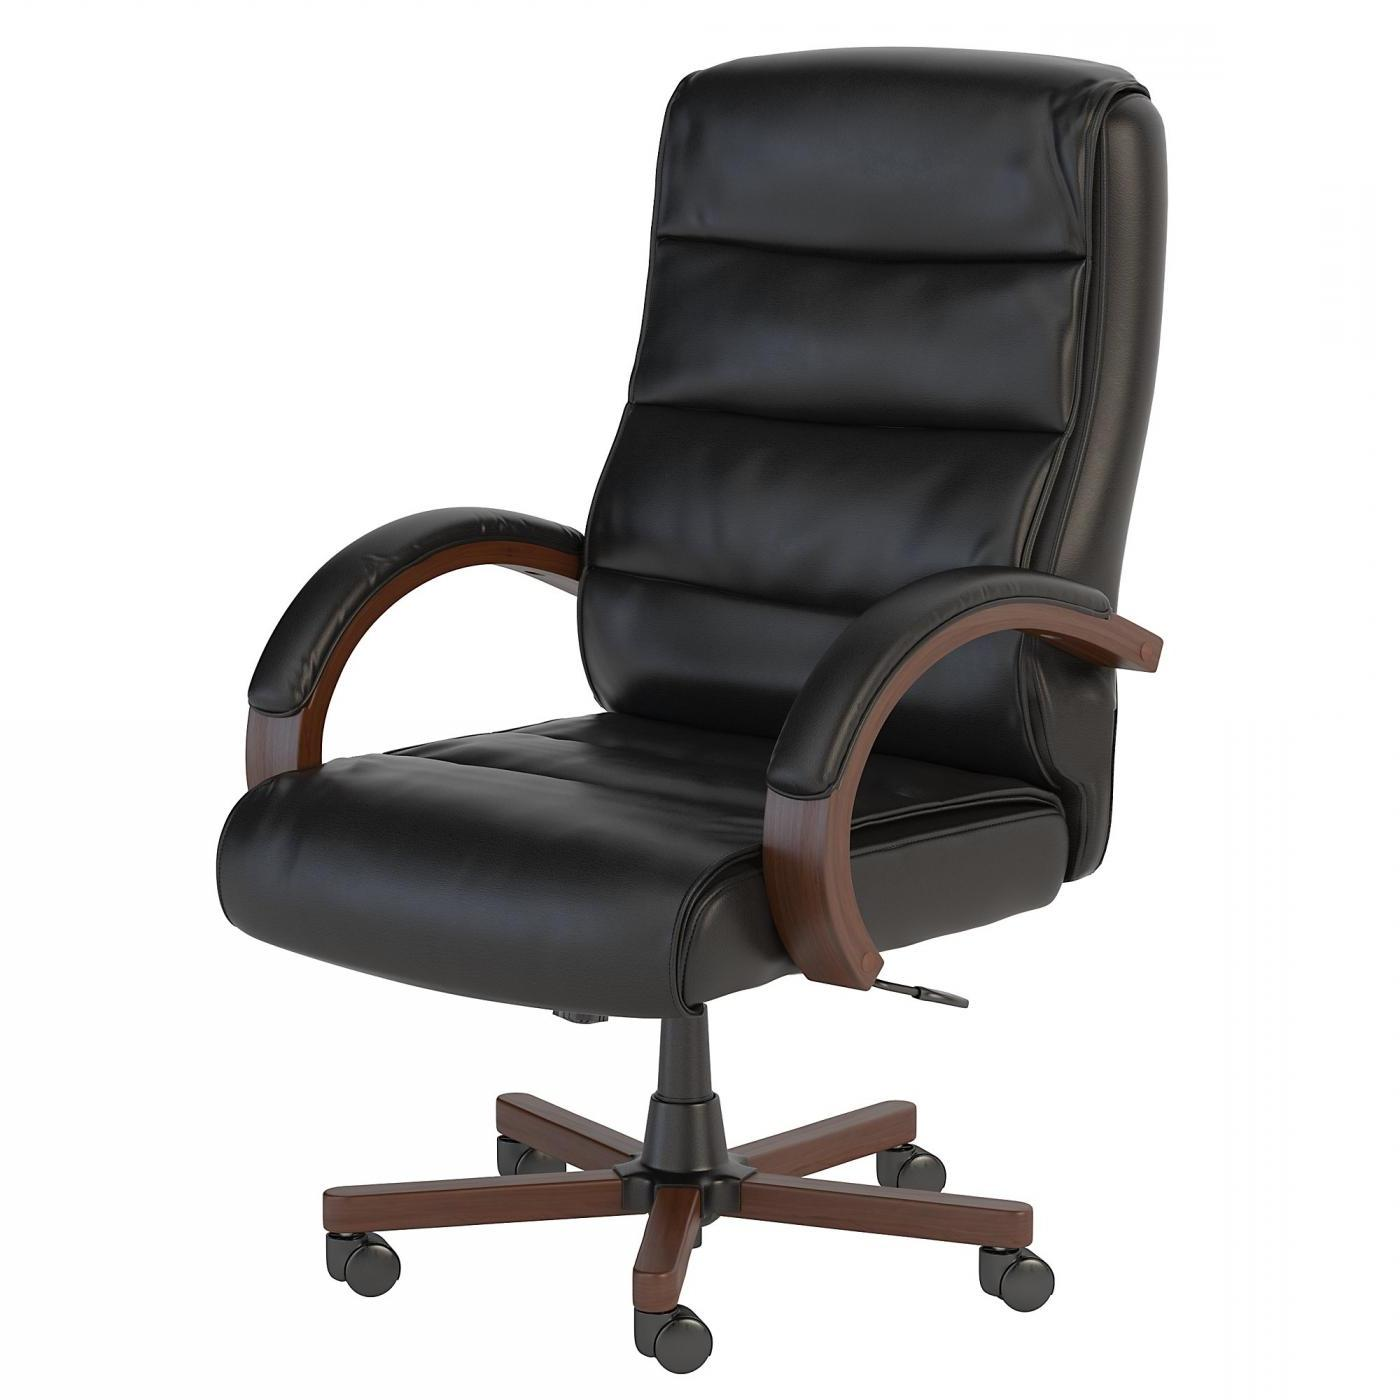 BUSH BUSINESS FURNITURE SOFT SENSE HIGH BACK LEATHER EXECUTIVE OFFICE CHAIR WITH WOOD ARMS. FREE SHIPPING.  SALE DEDUCT 10% MORE ENTER '10percent' IN COUPON CODE BOX WHILE CHECKING OUT.